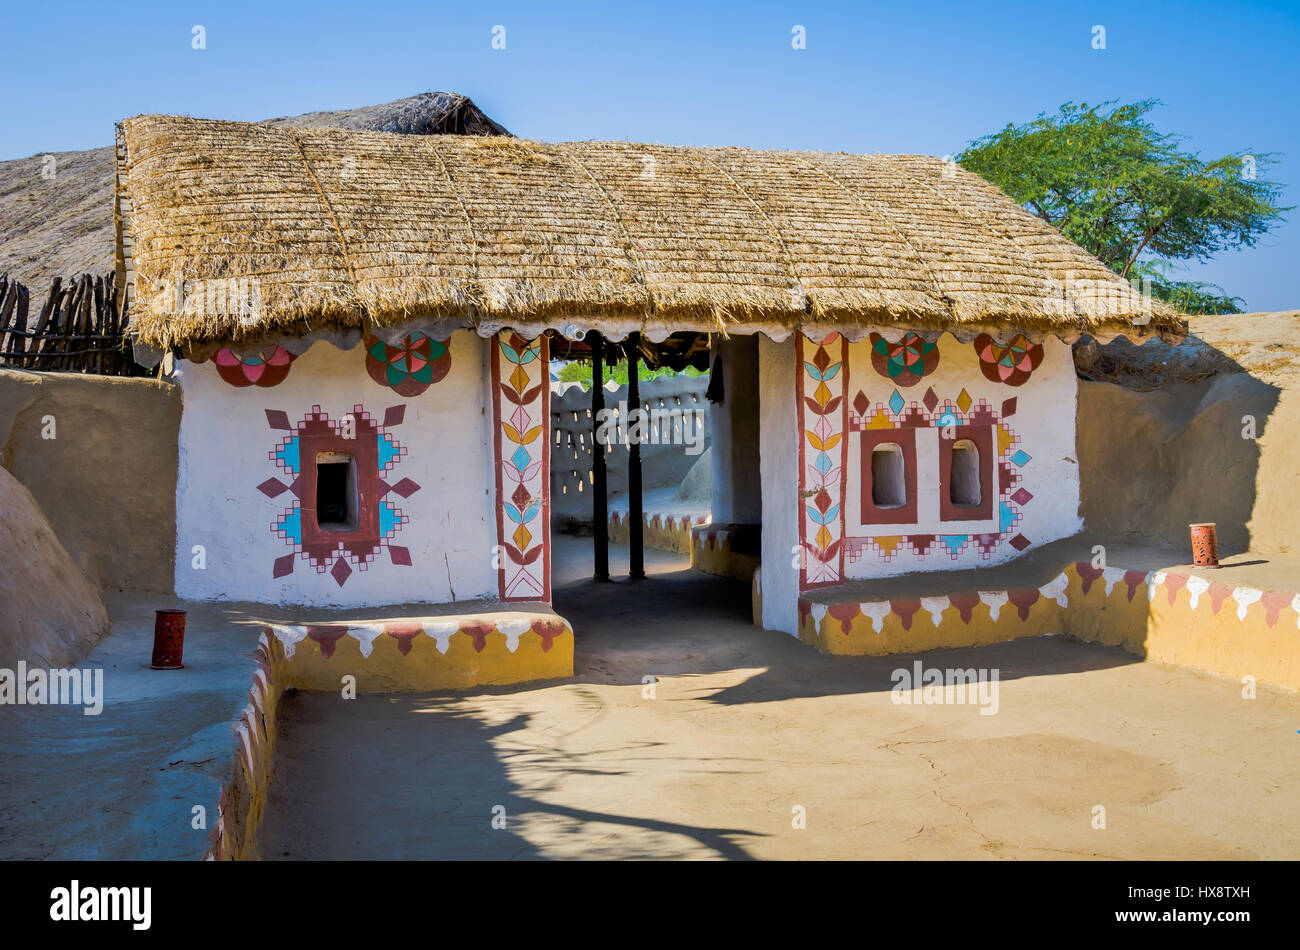 Kutch india december 27 2016 exterior of a decorative entrance of house